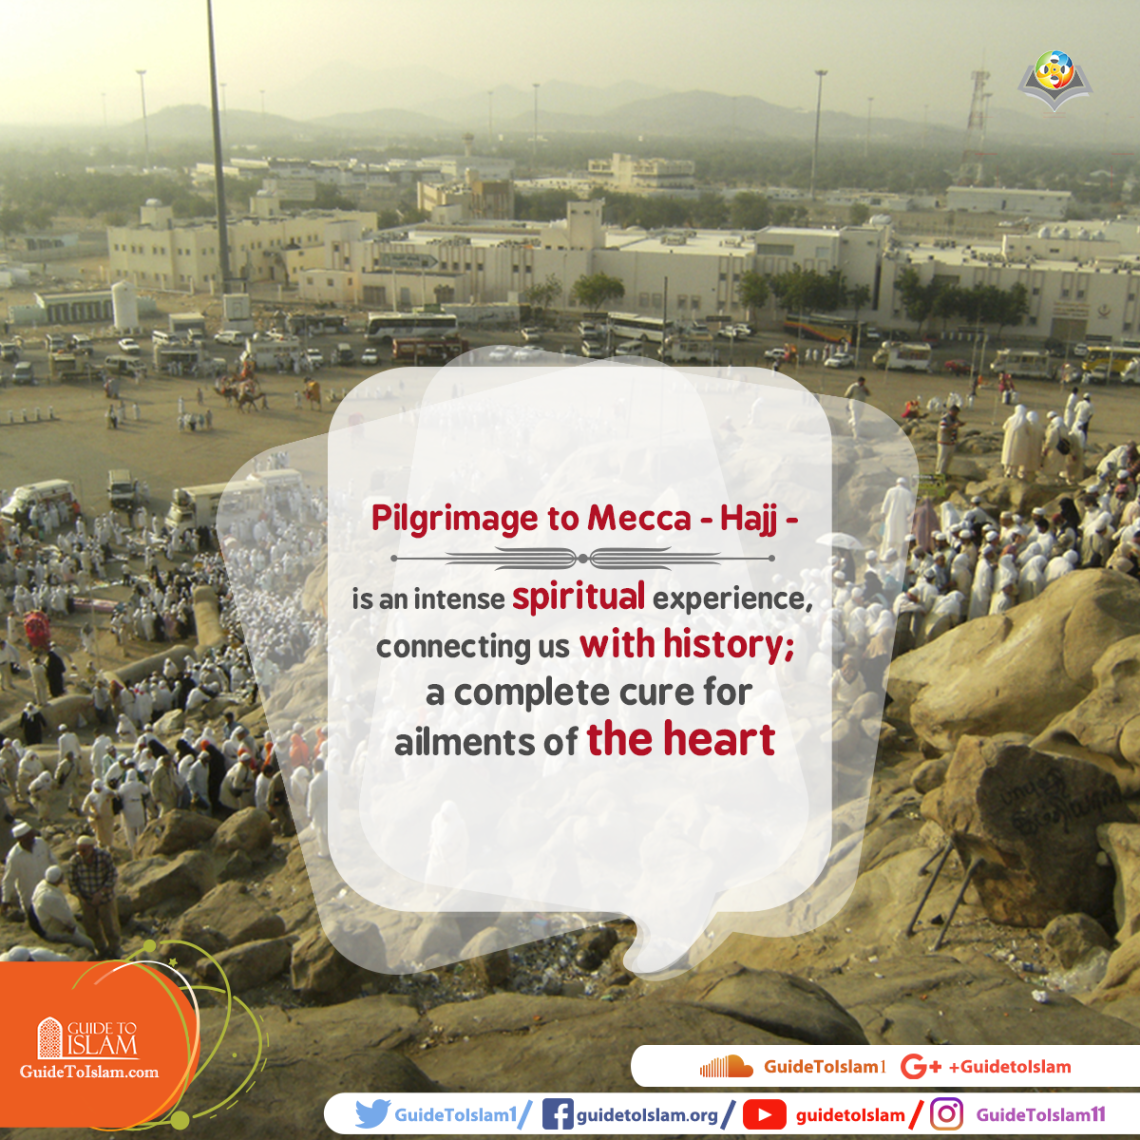 Pilgrimage to Mecca - Hajj -